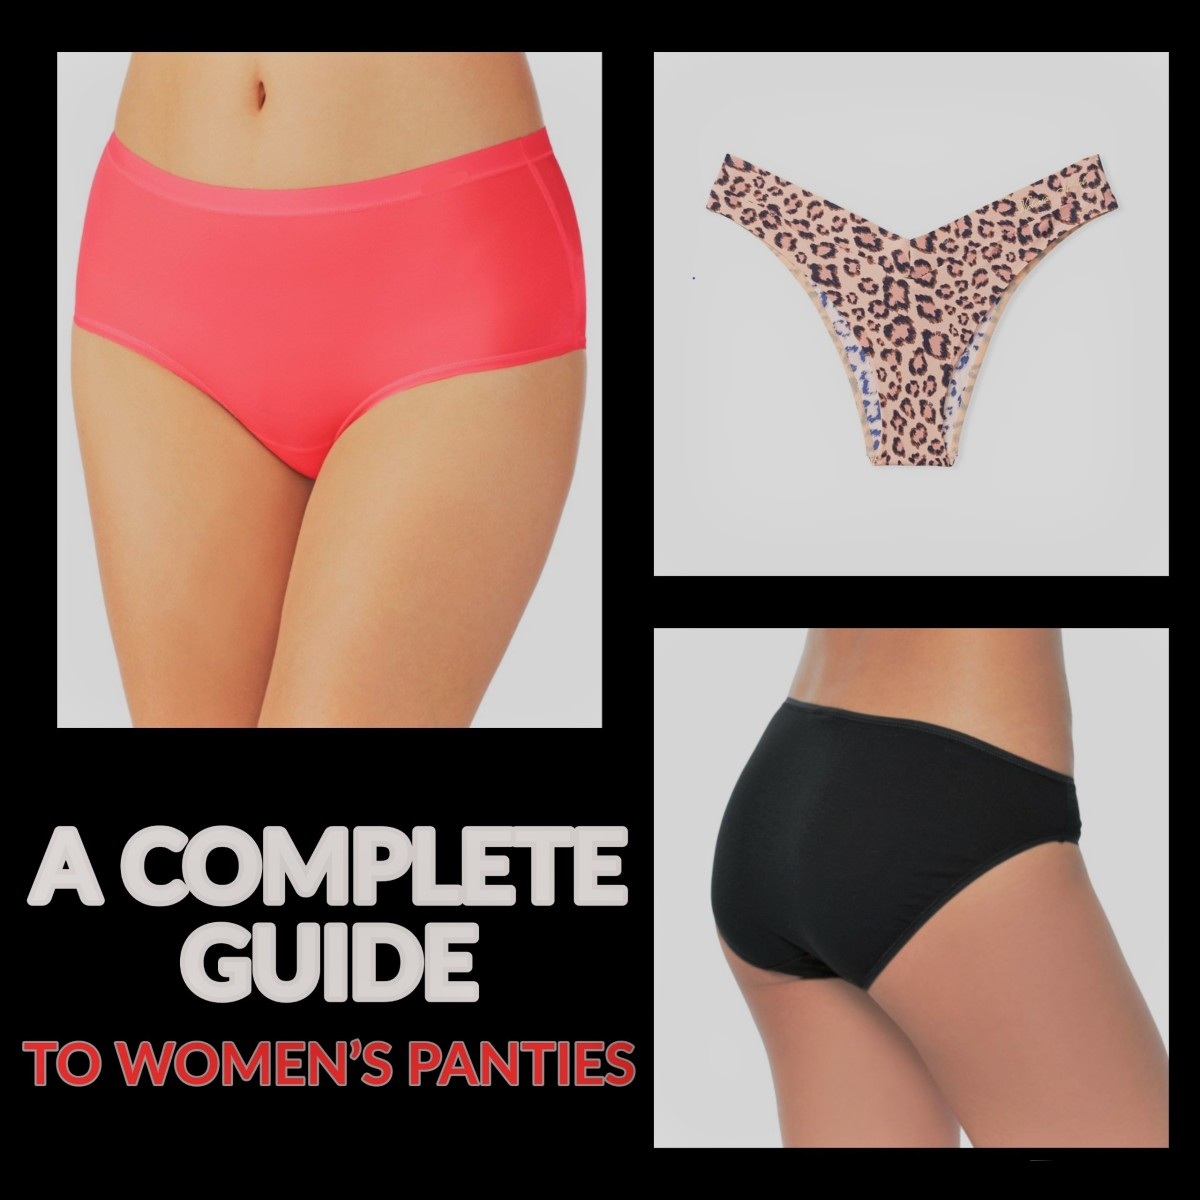 A Complete Guide to Women's Panties.